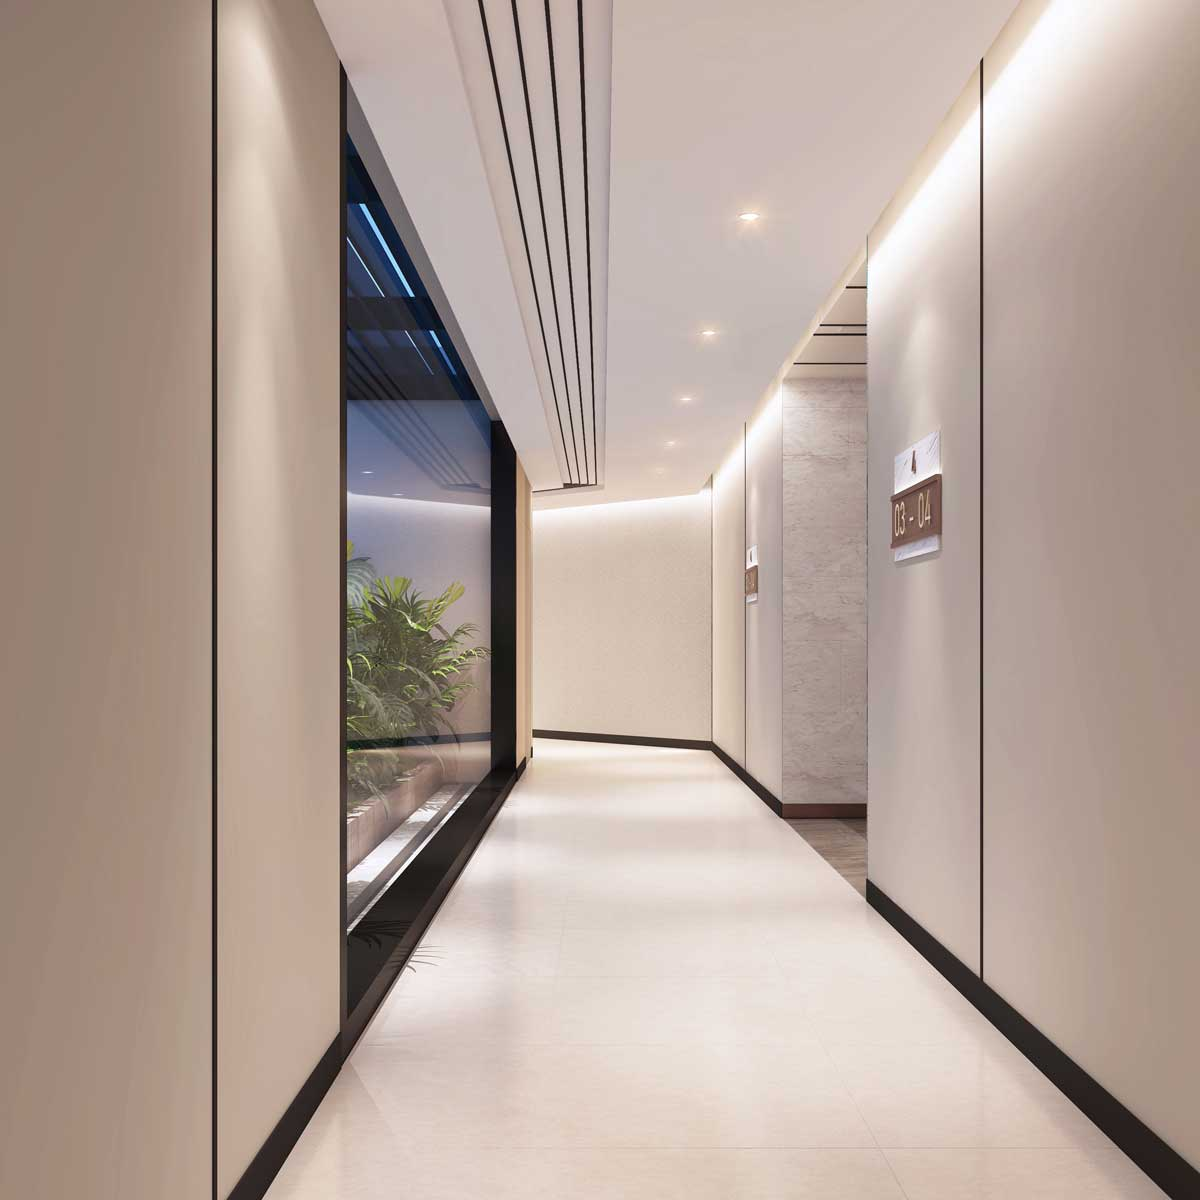 Hanh lang Can ho Thao Dien Green Towers - Thảo Điền Green Towers Quận 2